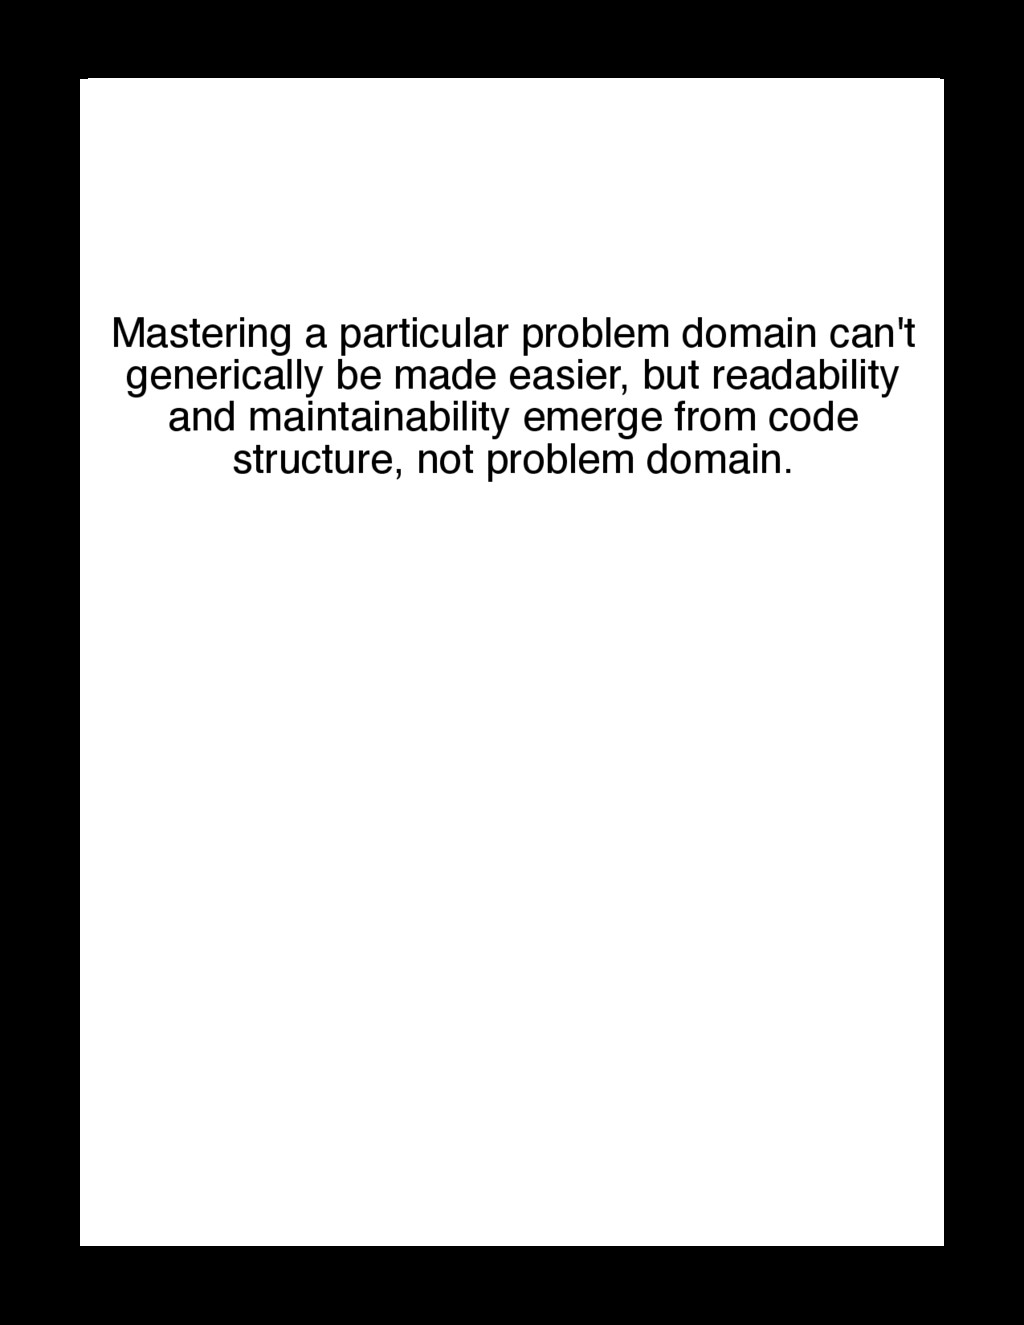 Mastering a particular problem domain can't gen...